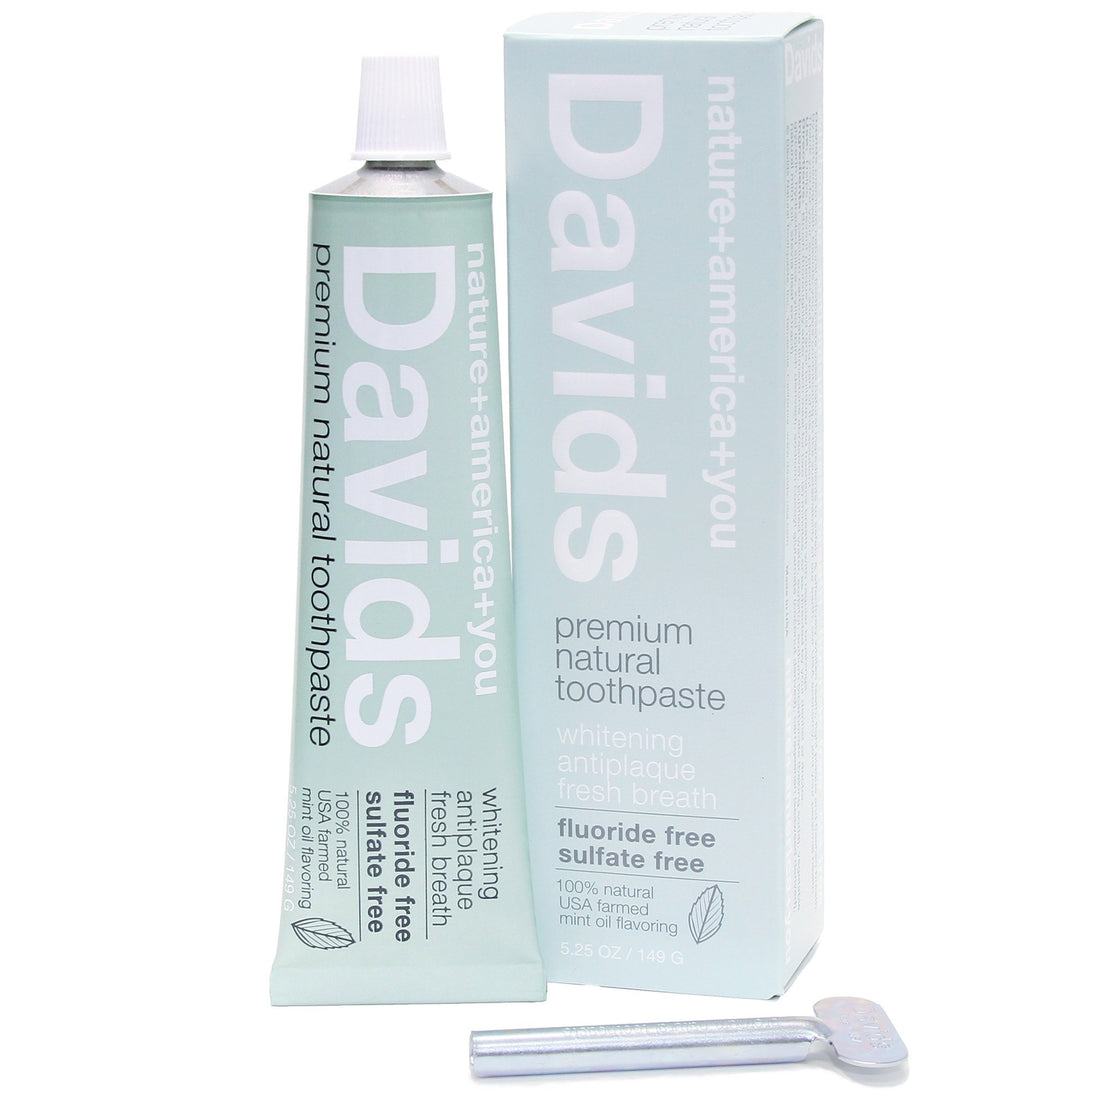 Davids Natural Toothpaste - Grooming - Iron and Resin